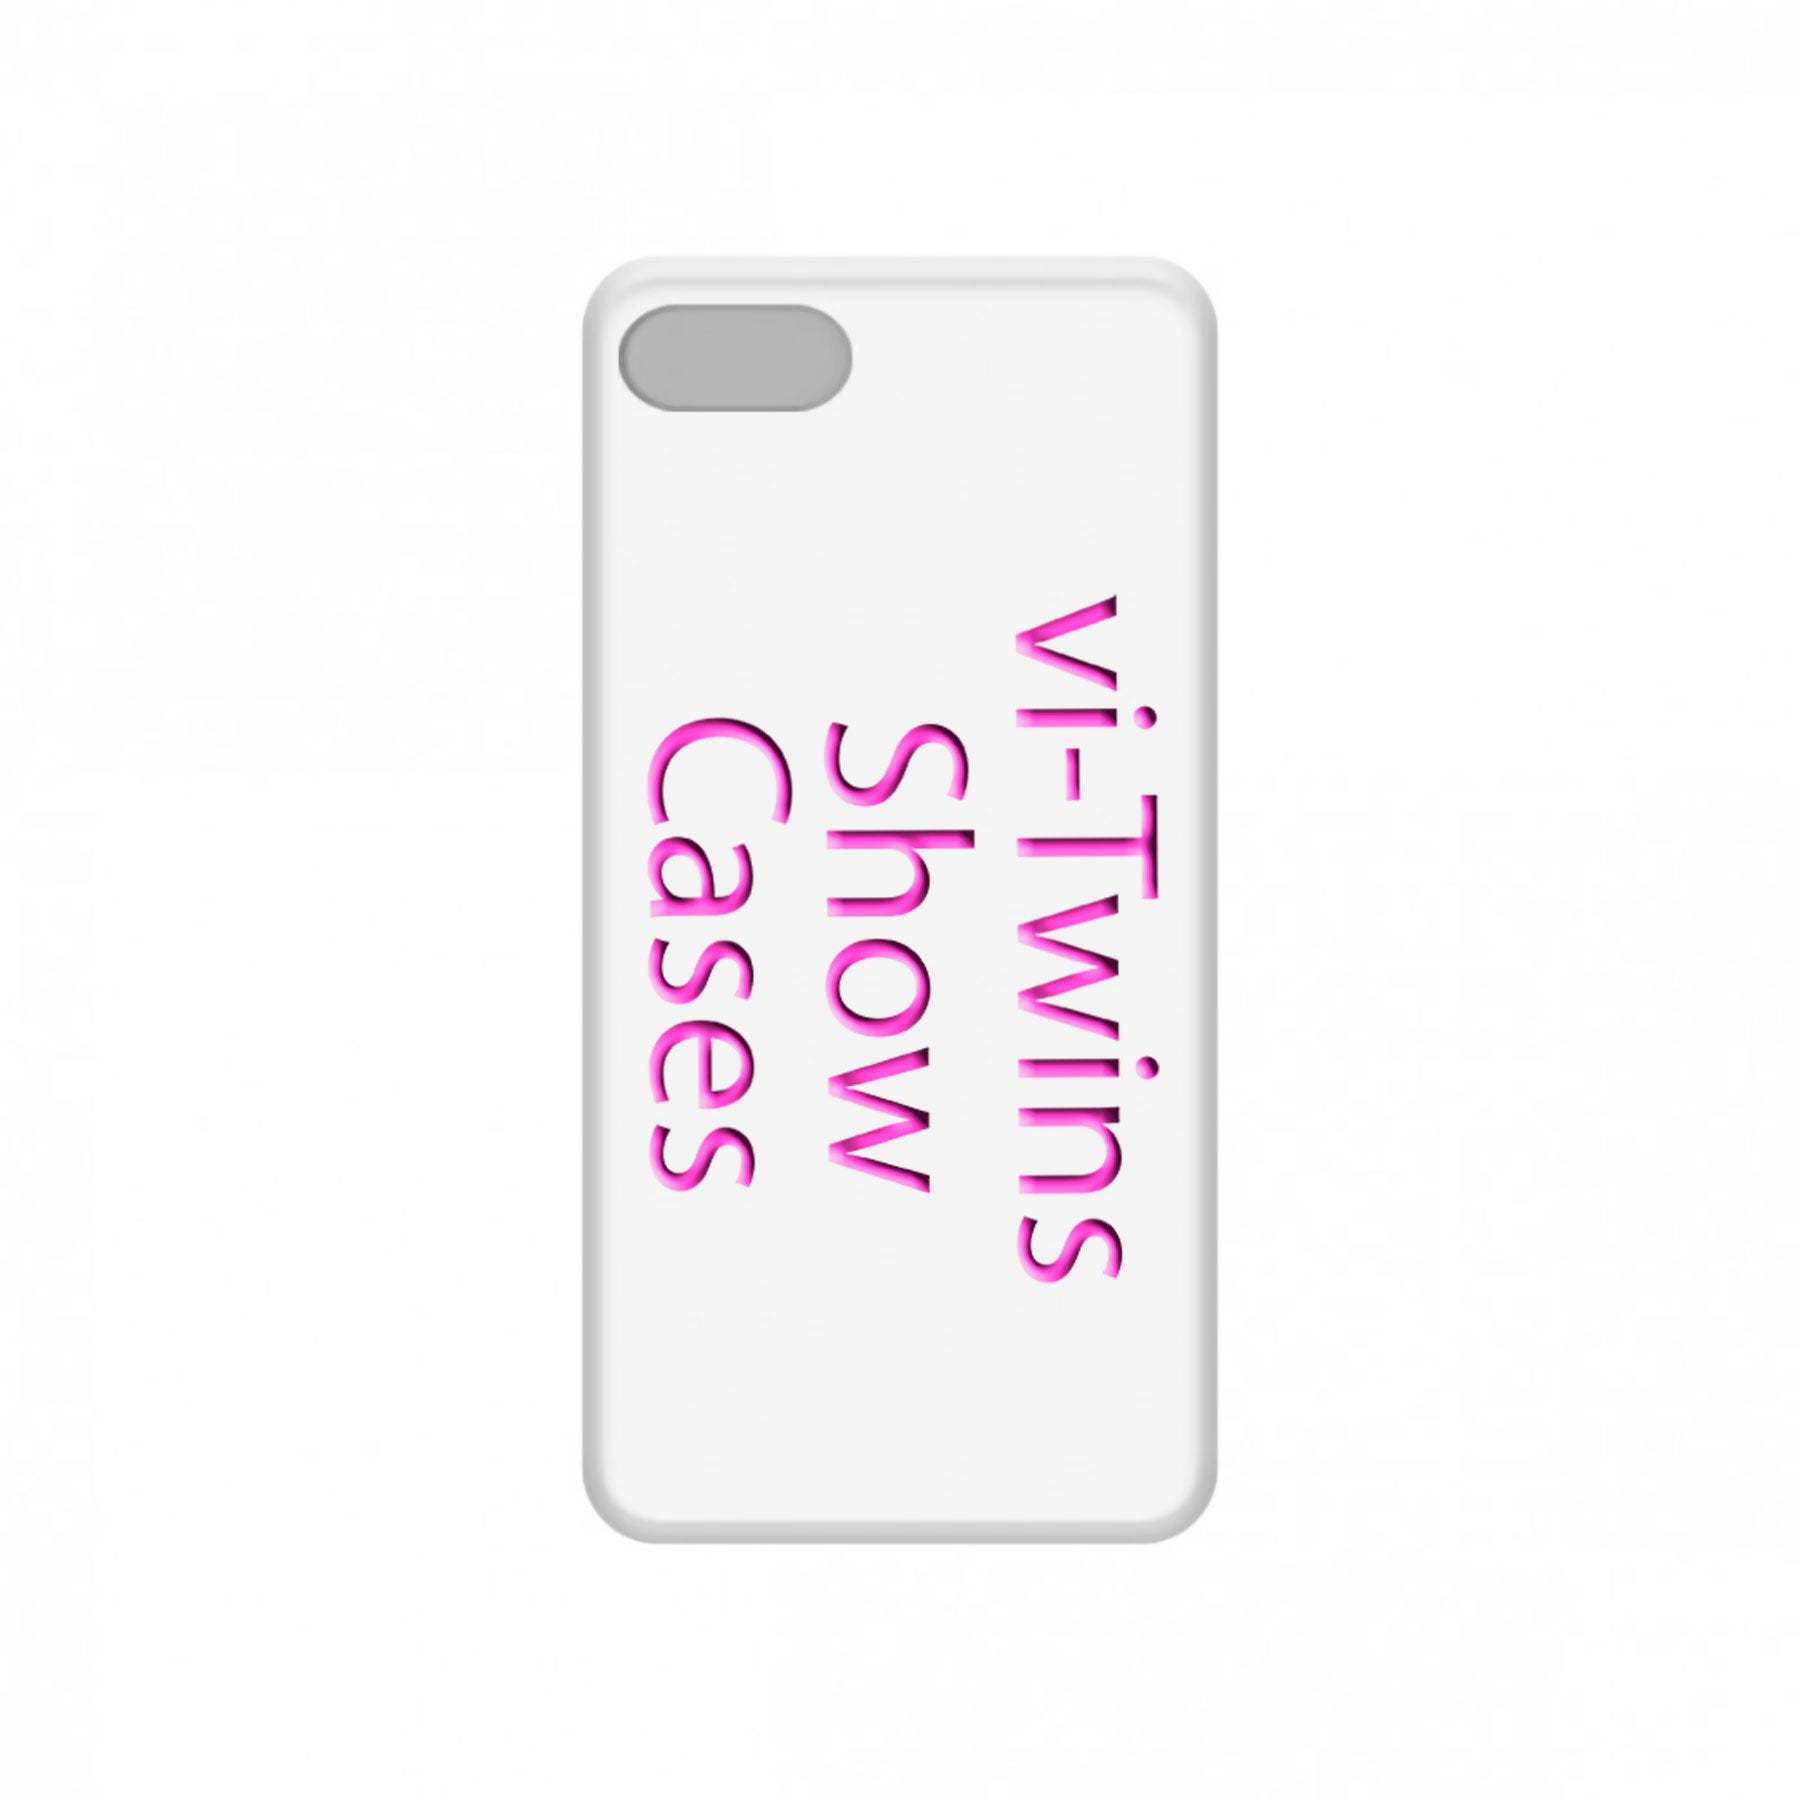 vi-Twins - Funda Móvil White Show Cases Pink - Merchanfy Imprime tus camisetas